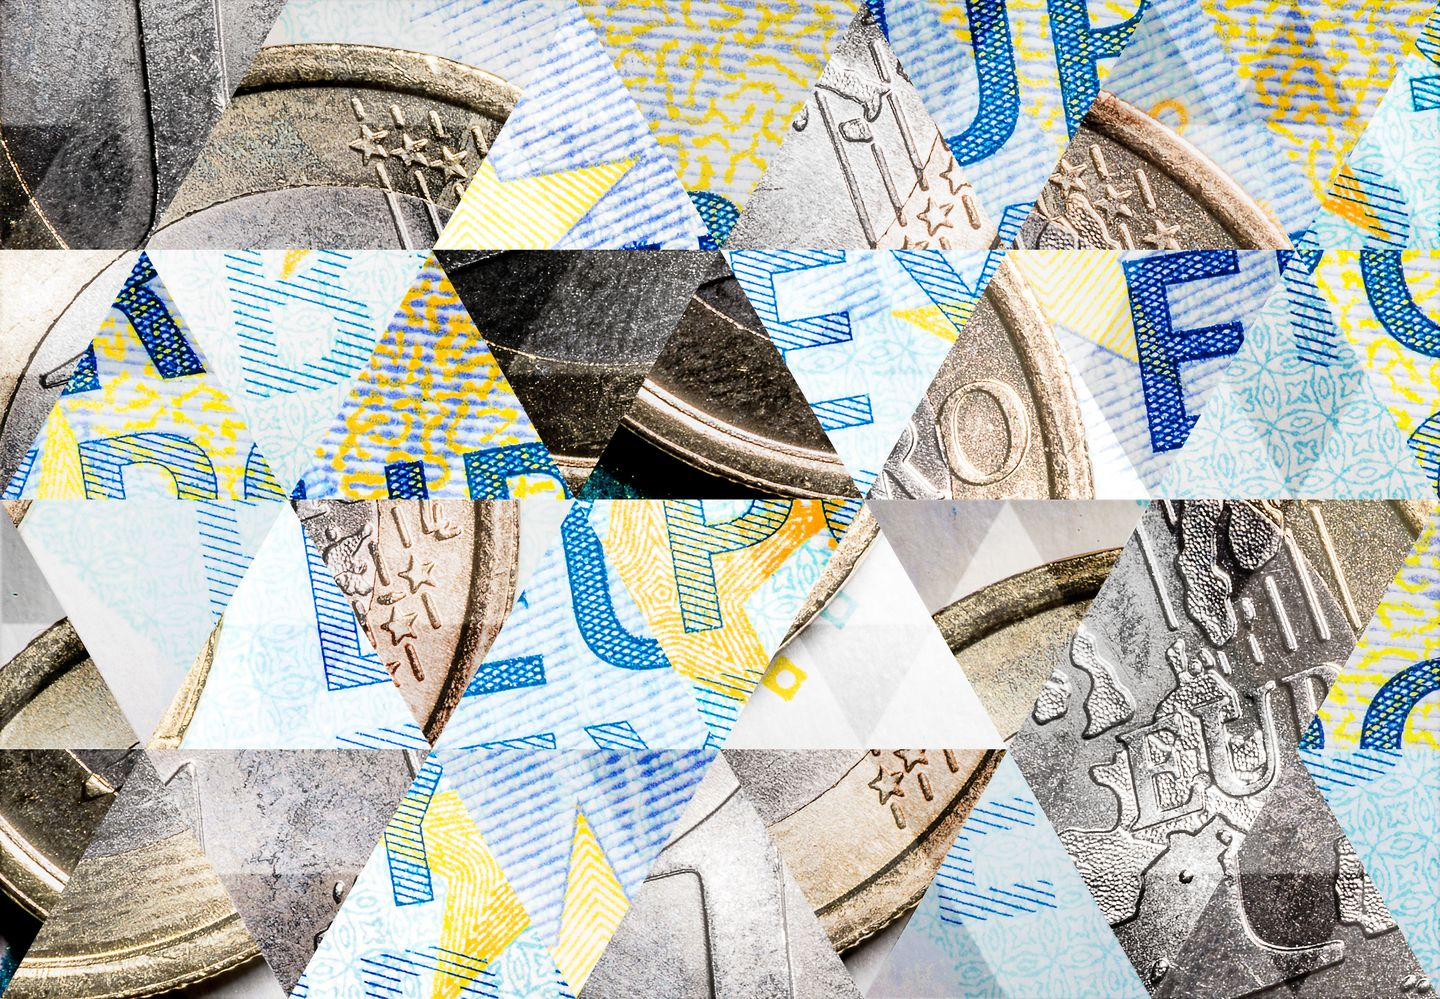 A collage of triangles shows in its facets parts of Euro coins and Euro bills. Photo: © ilbusca/ iStock/Getty Images Plus